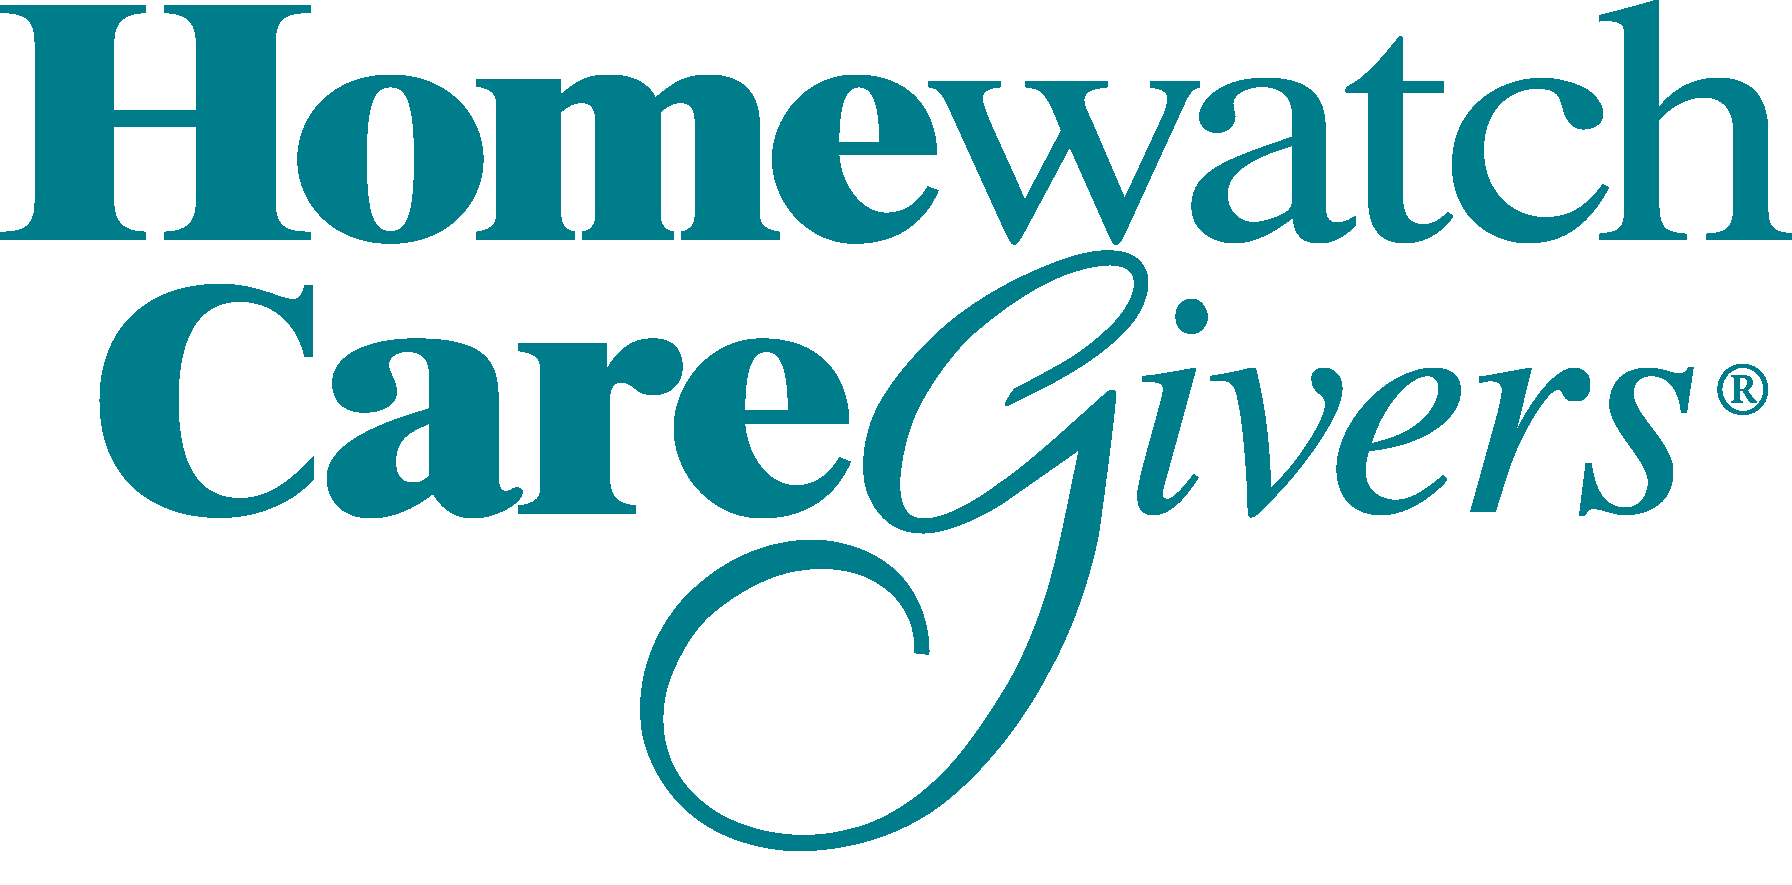 Homewatch CareGivers of Central Bucks County